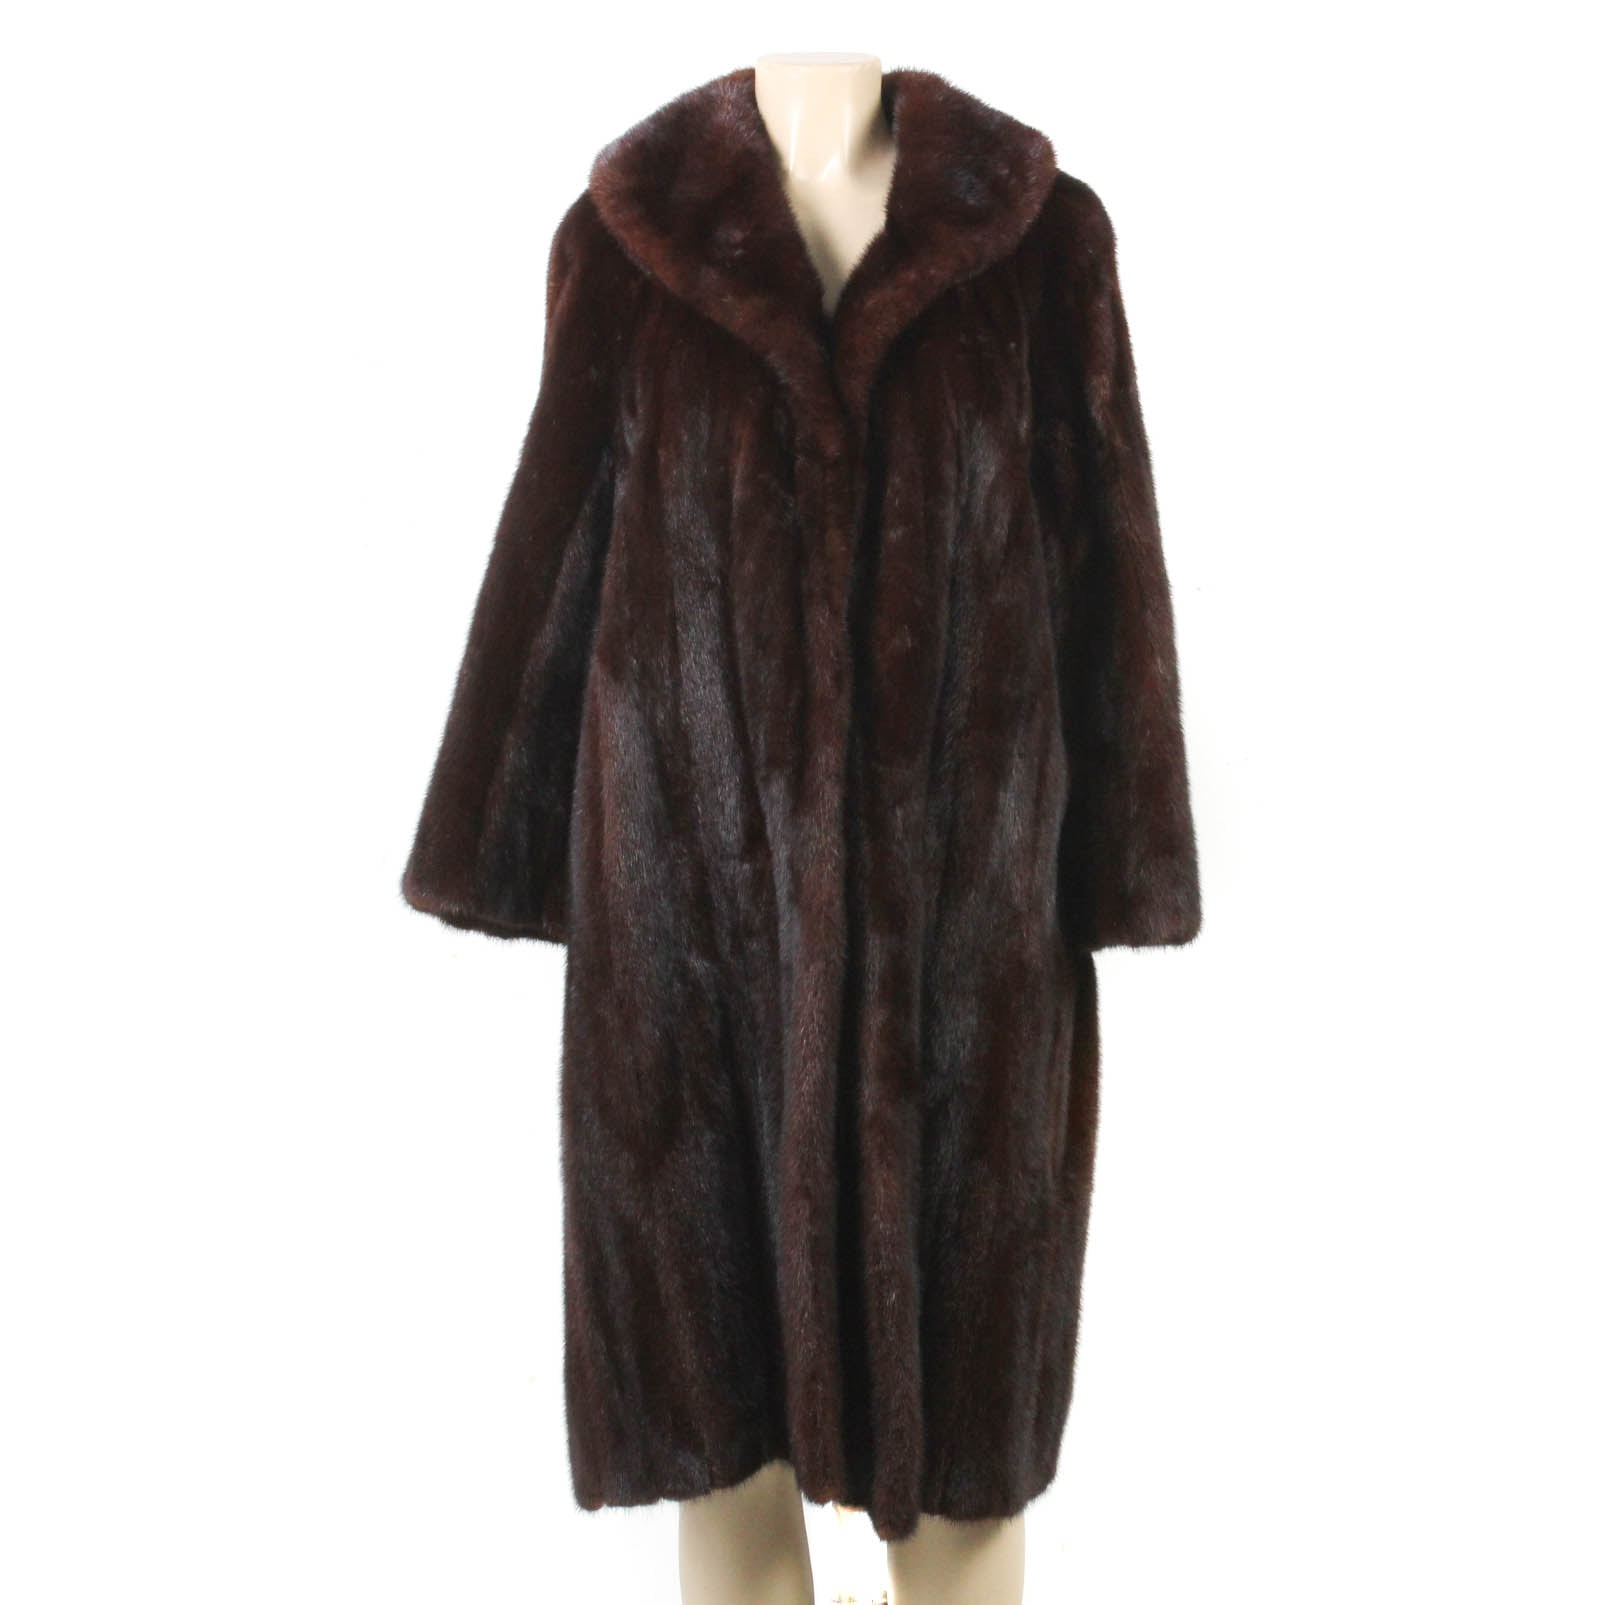 Somper Furs of Beverly Hills Mahogany Mink Fur Coat